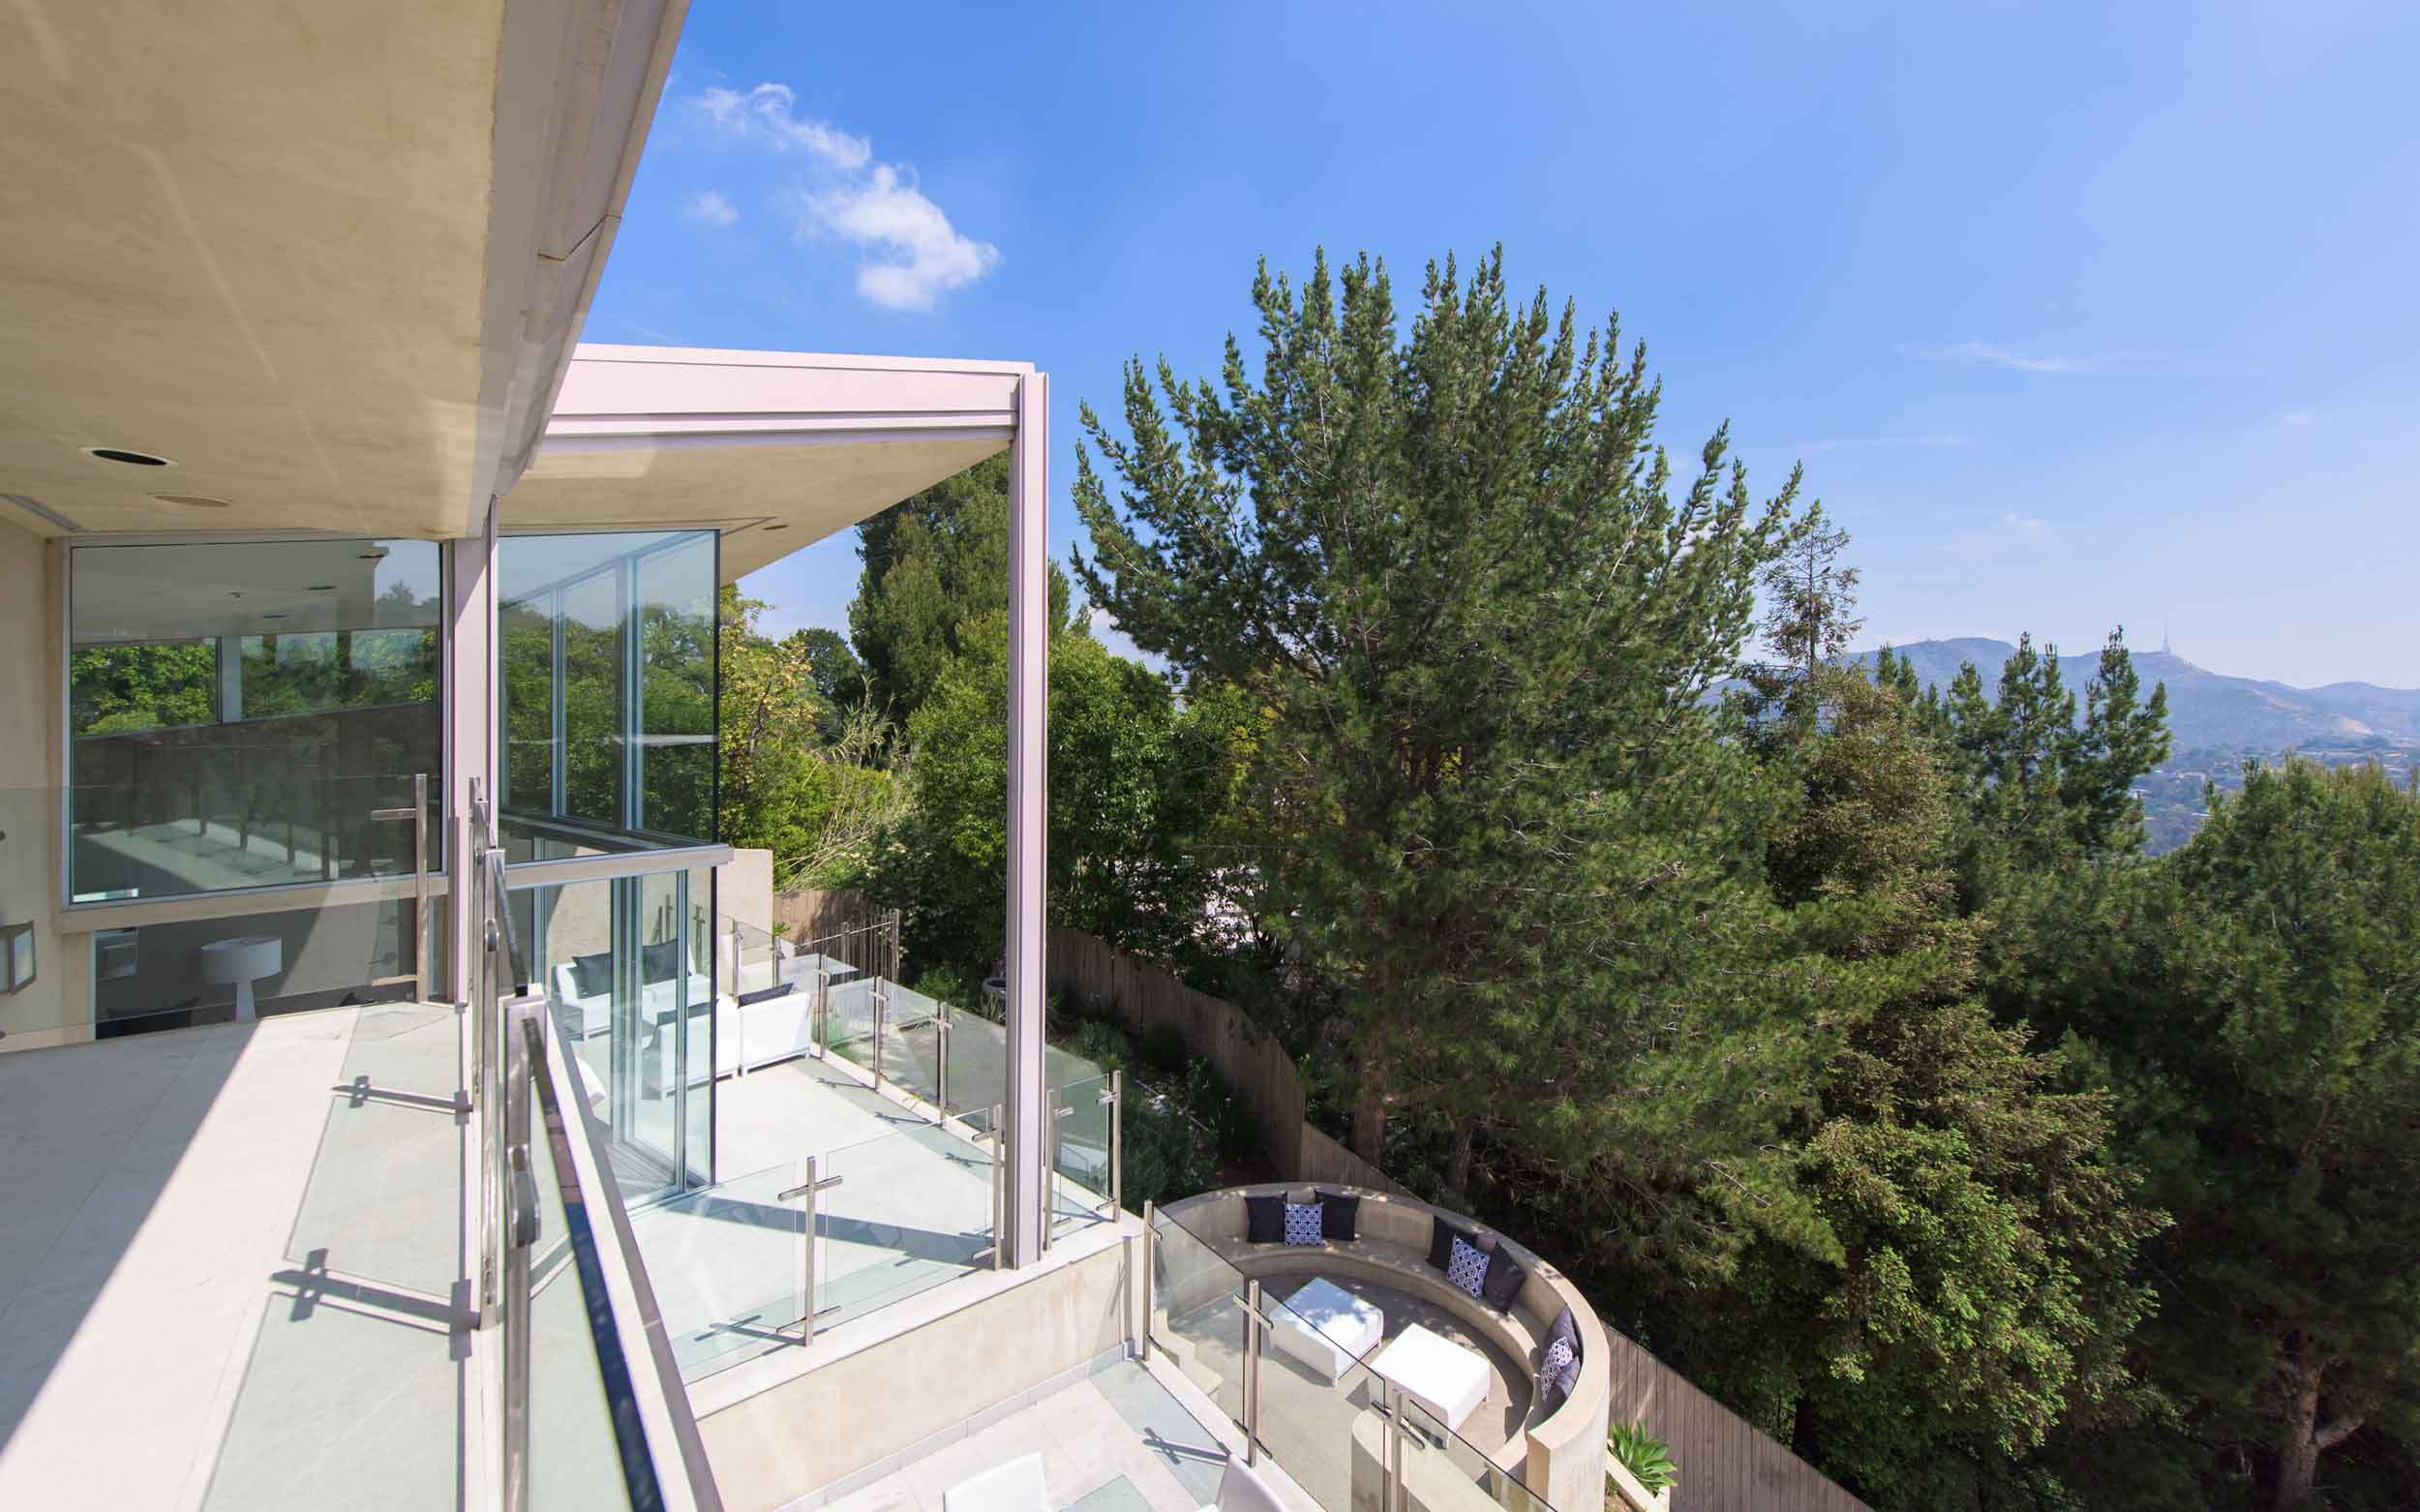 With stellar views of the Hollywood Hills and the famous Hollywood Bowl Fourth of July fireworks, this gated compound on Mulholland Drive affords a lifestyle suited to the rich and famous.